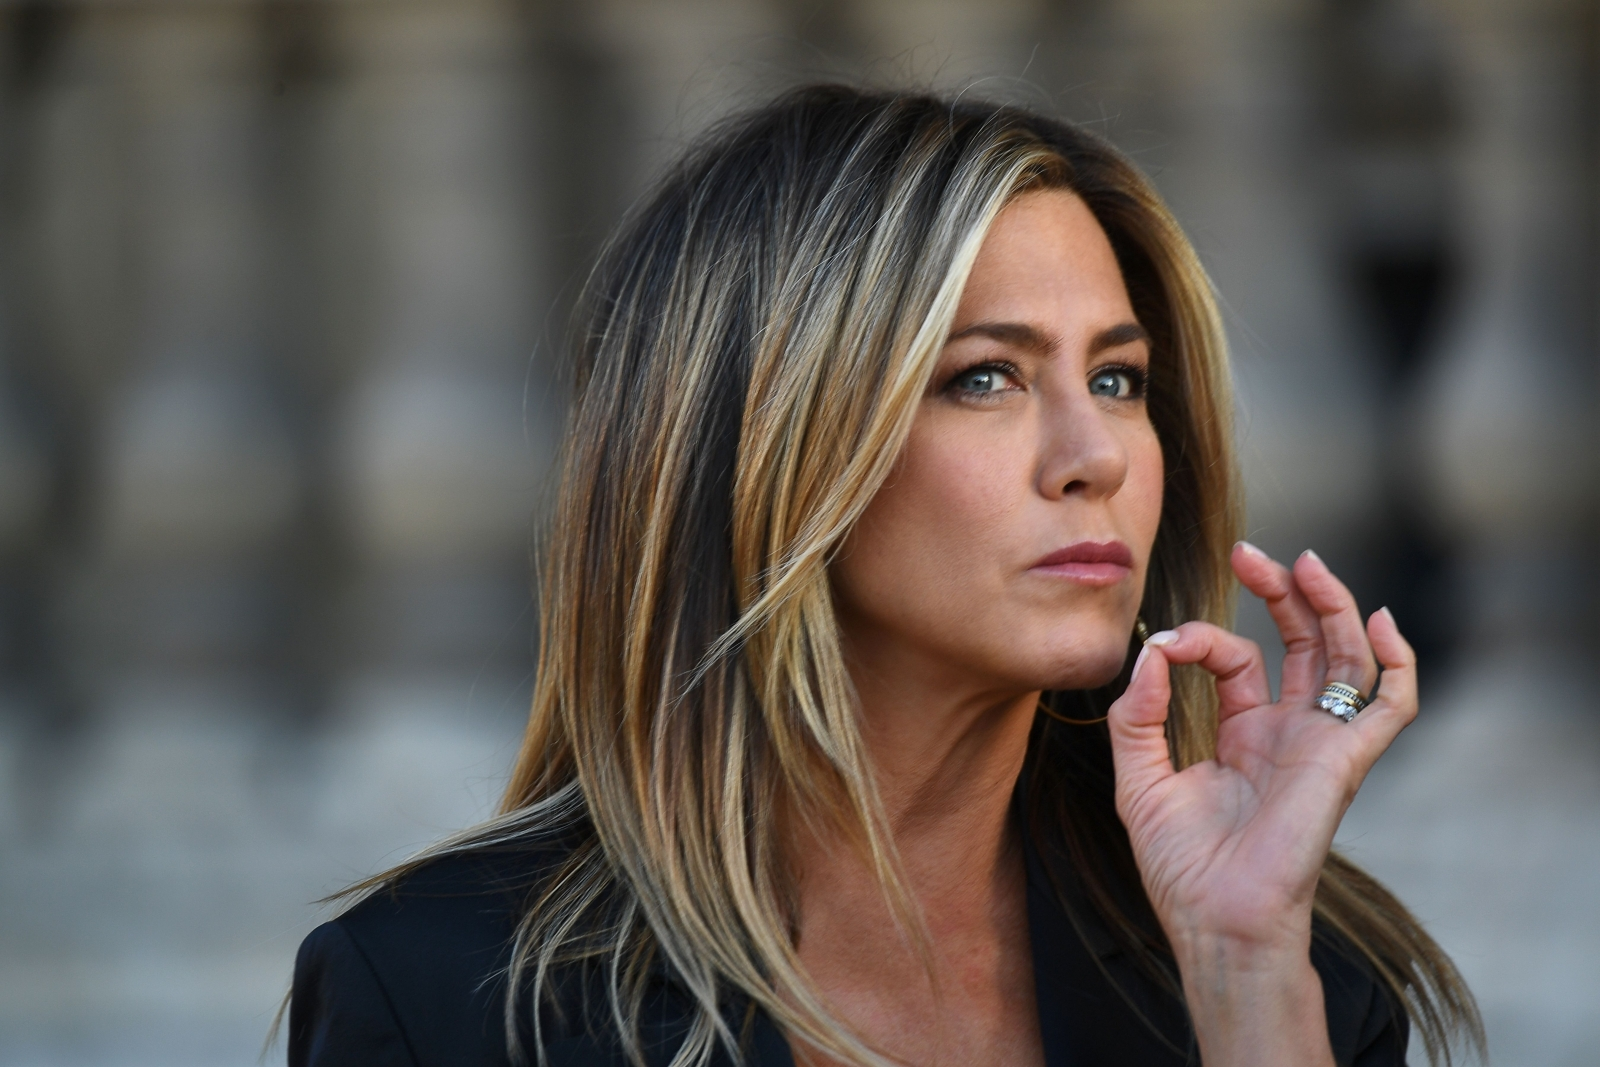 Jennifer Aniston slams fake pregnancy rumours: My body is not 'any of your business'